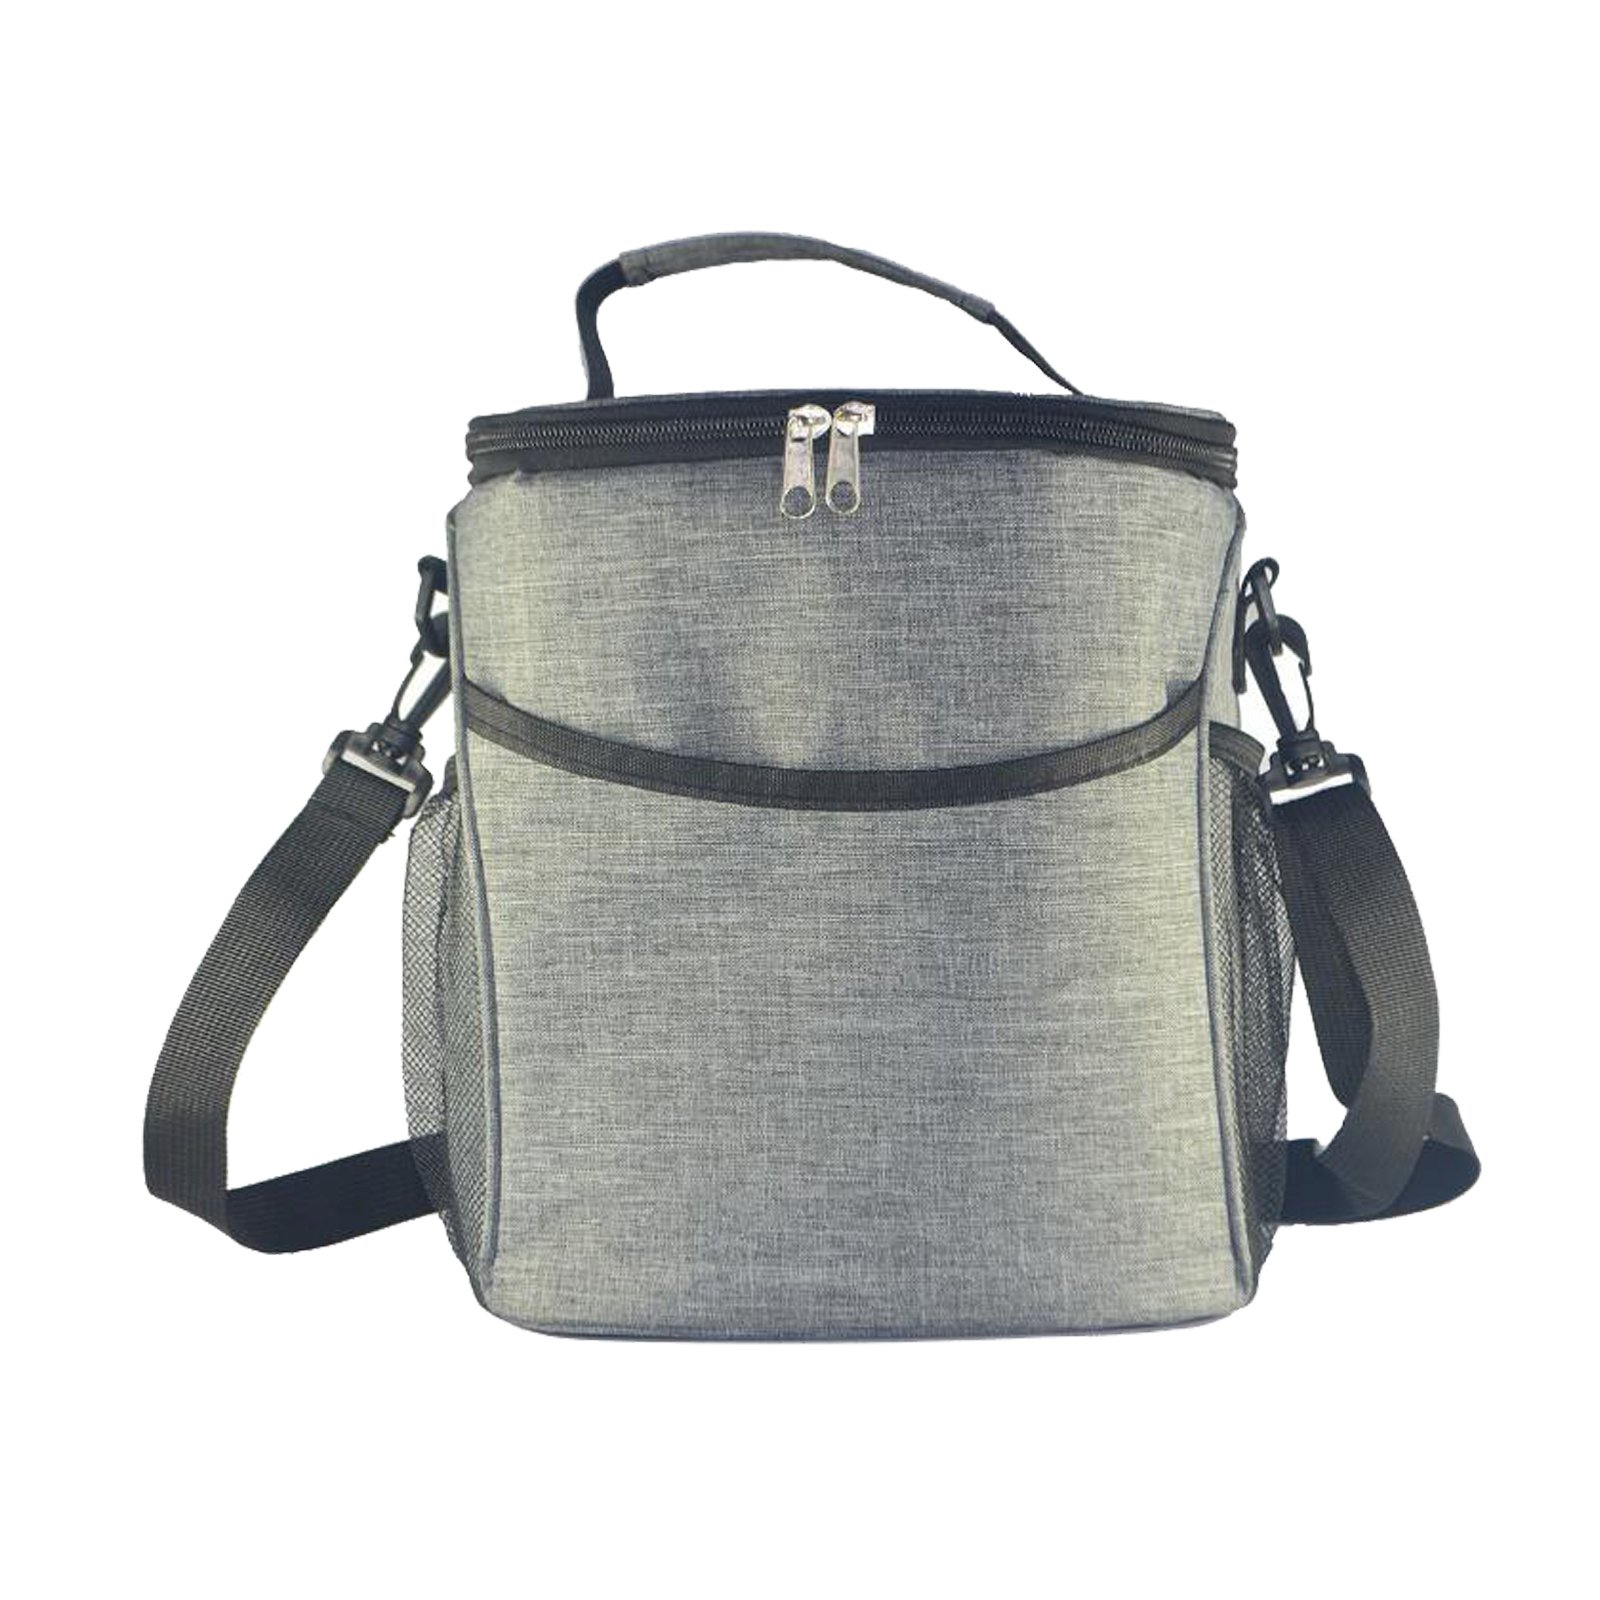 Evispo Insulated Lunch Box Lunch Bag for Men Women, Thermal Bento Bag, Leakproof Waterproof Cooler Bag for Office/School/Picnic, 9L, Grey